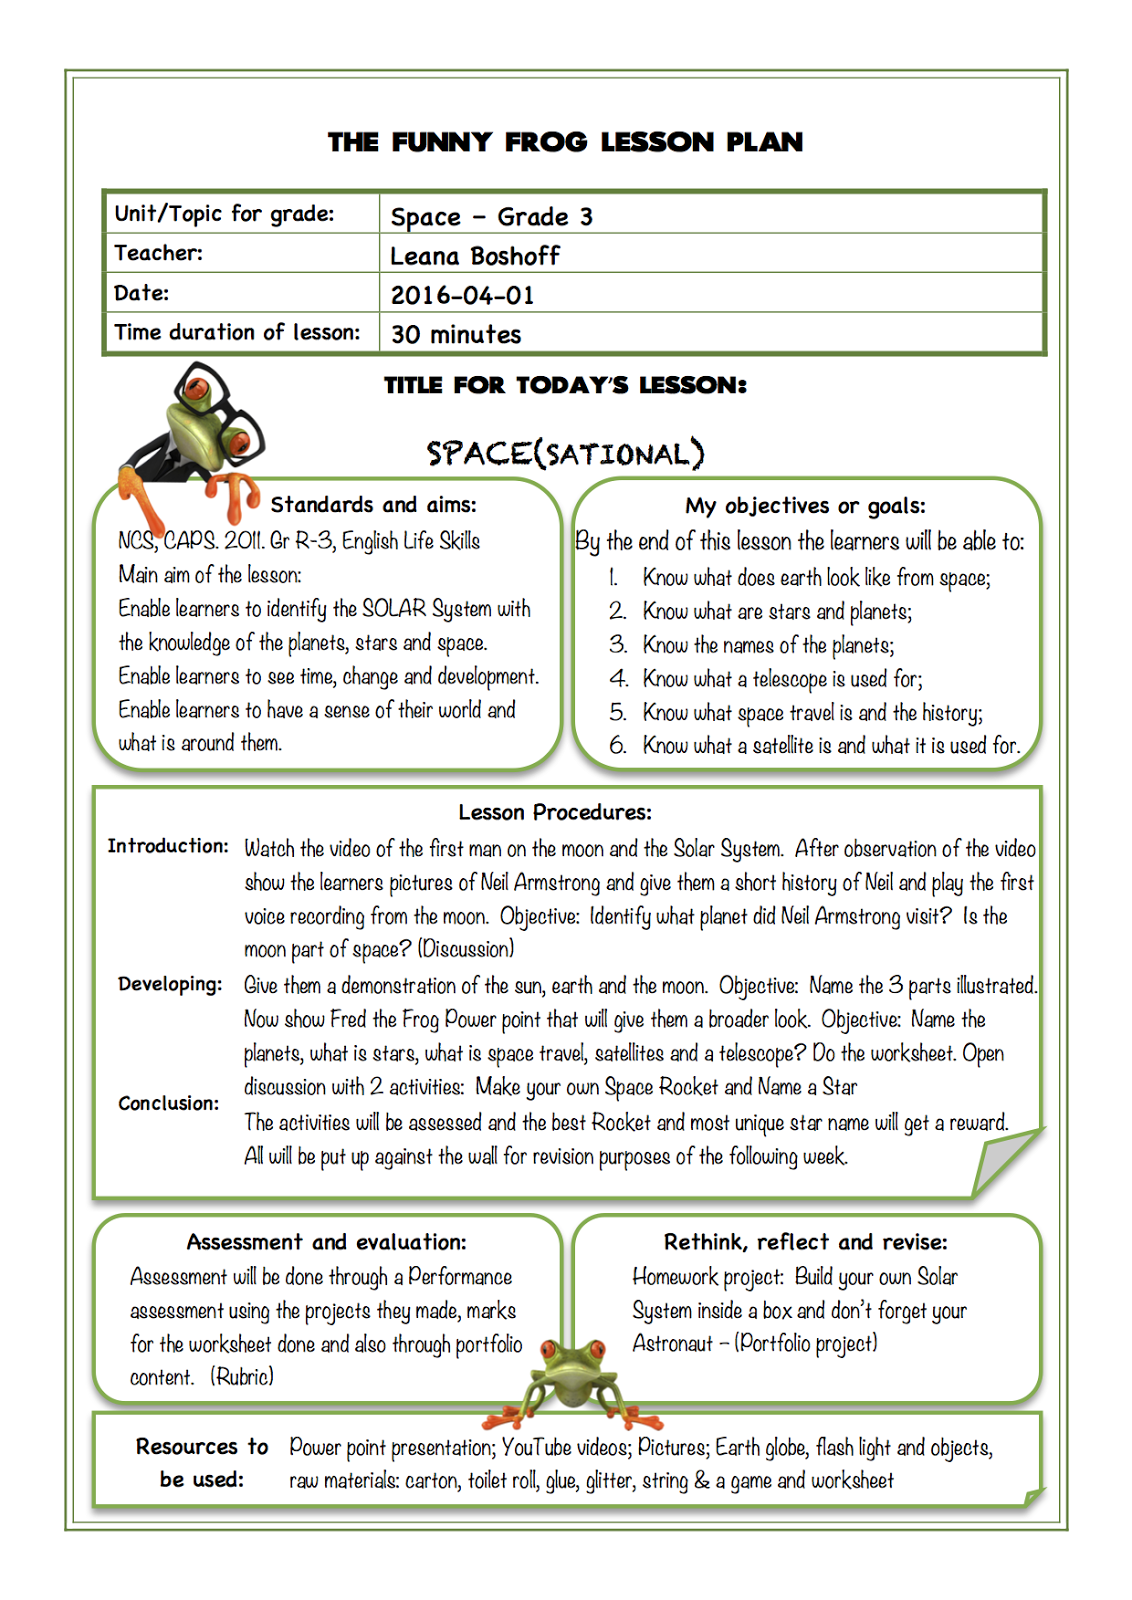 hight resolution of The Funny Frog Classroom: Space(sational) - Grade 3 Lesson